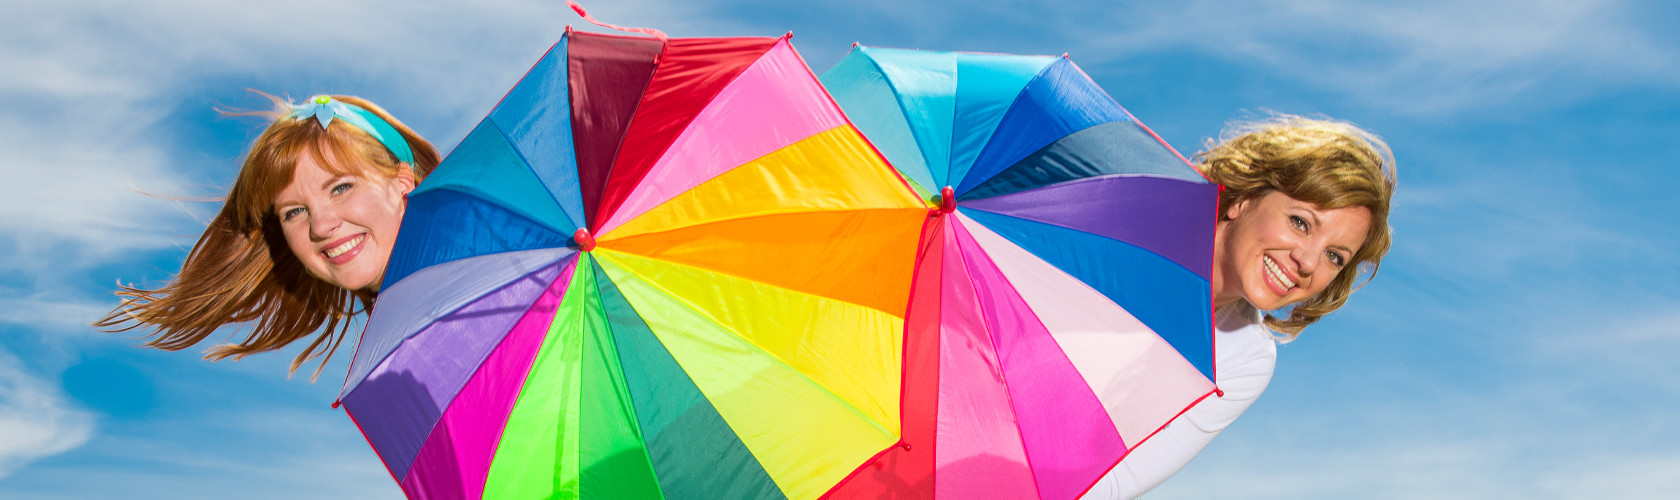 blfeaturedimg2_umbrella